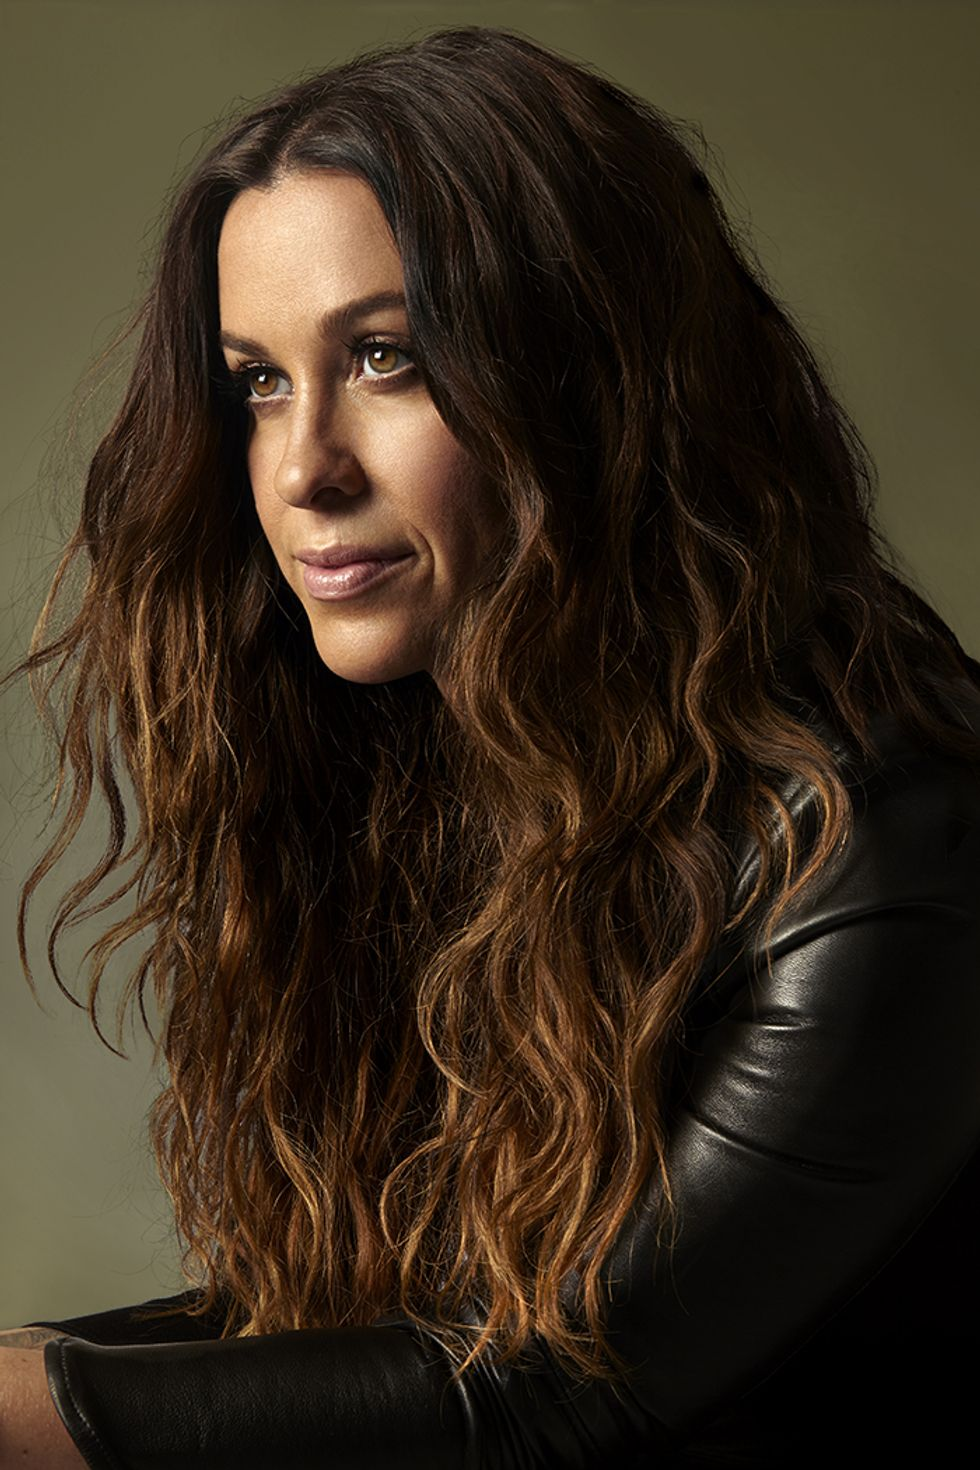 Use Your Voice: Alanis Morissette